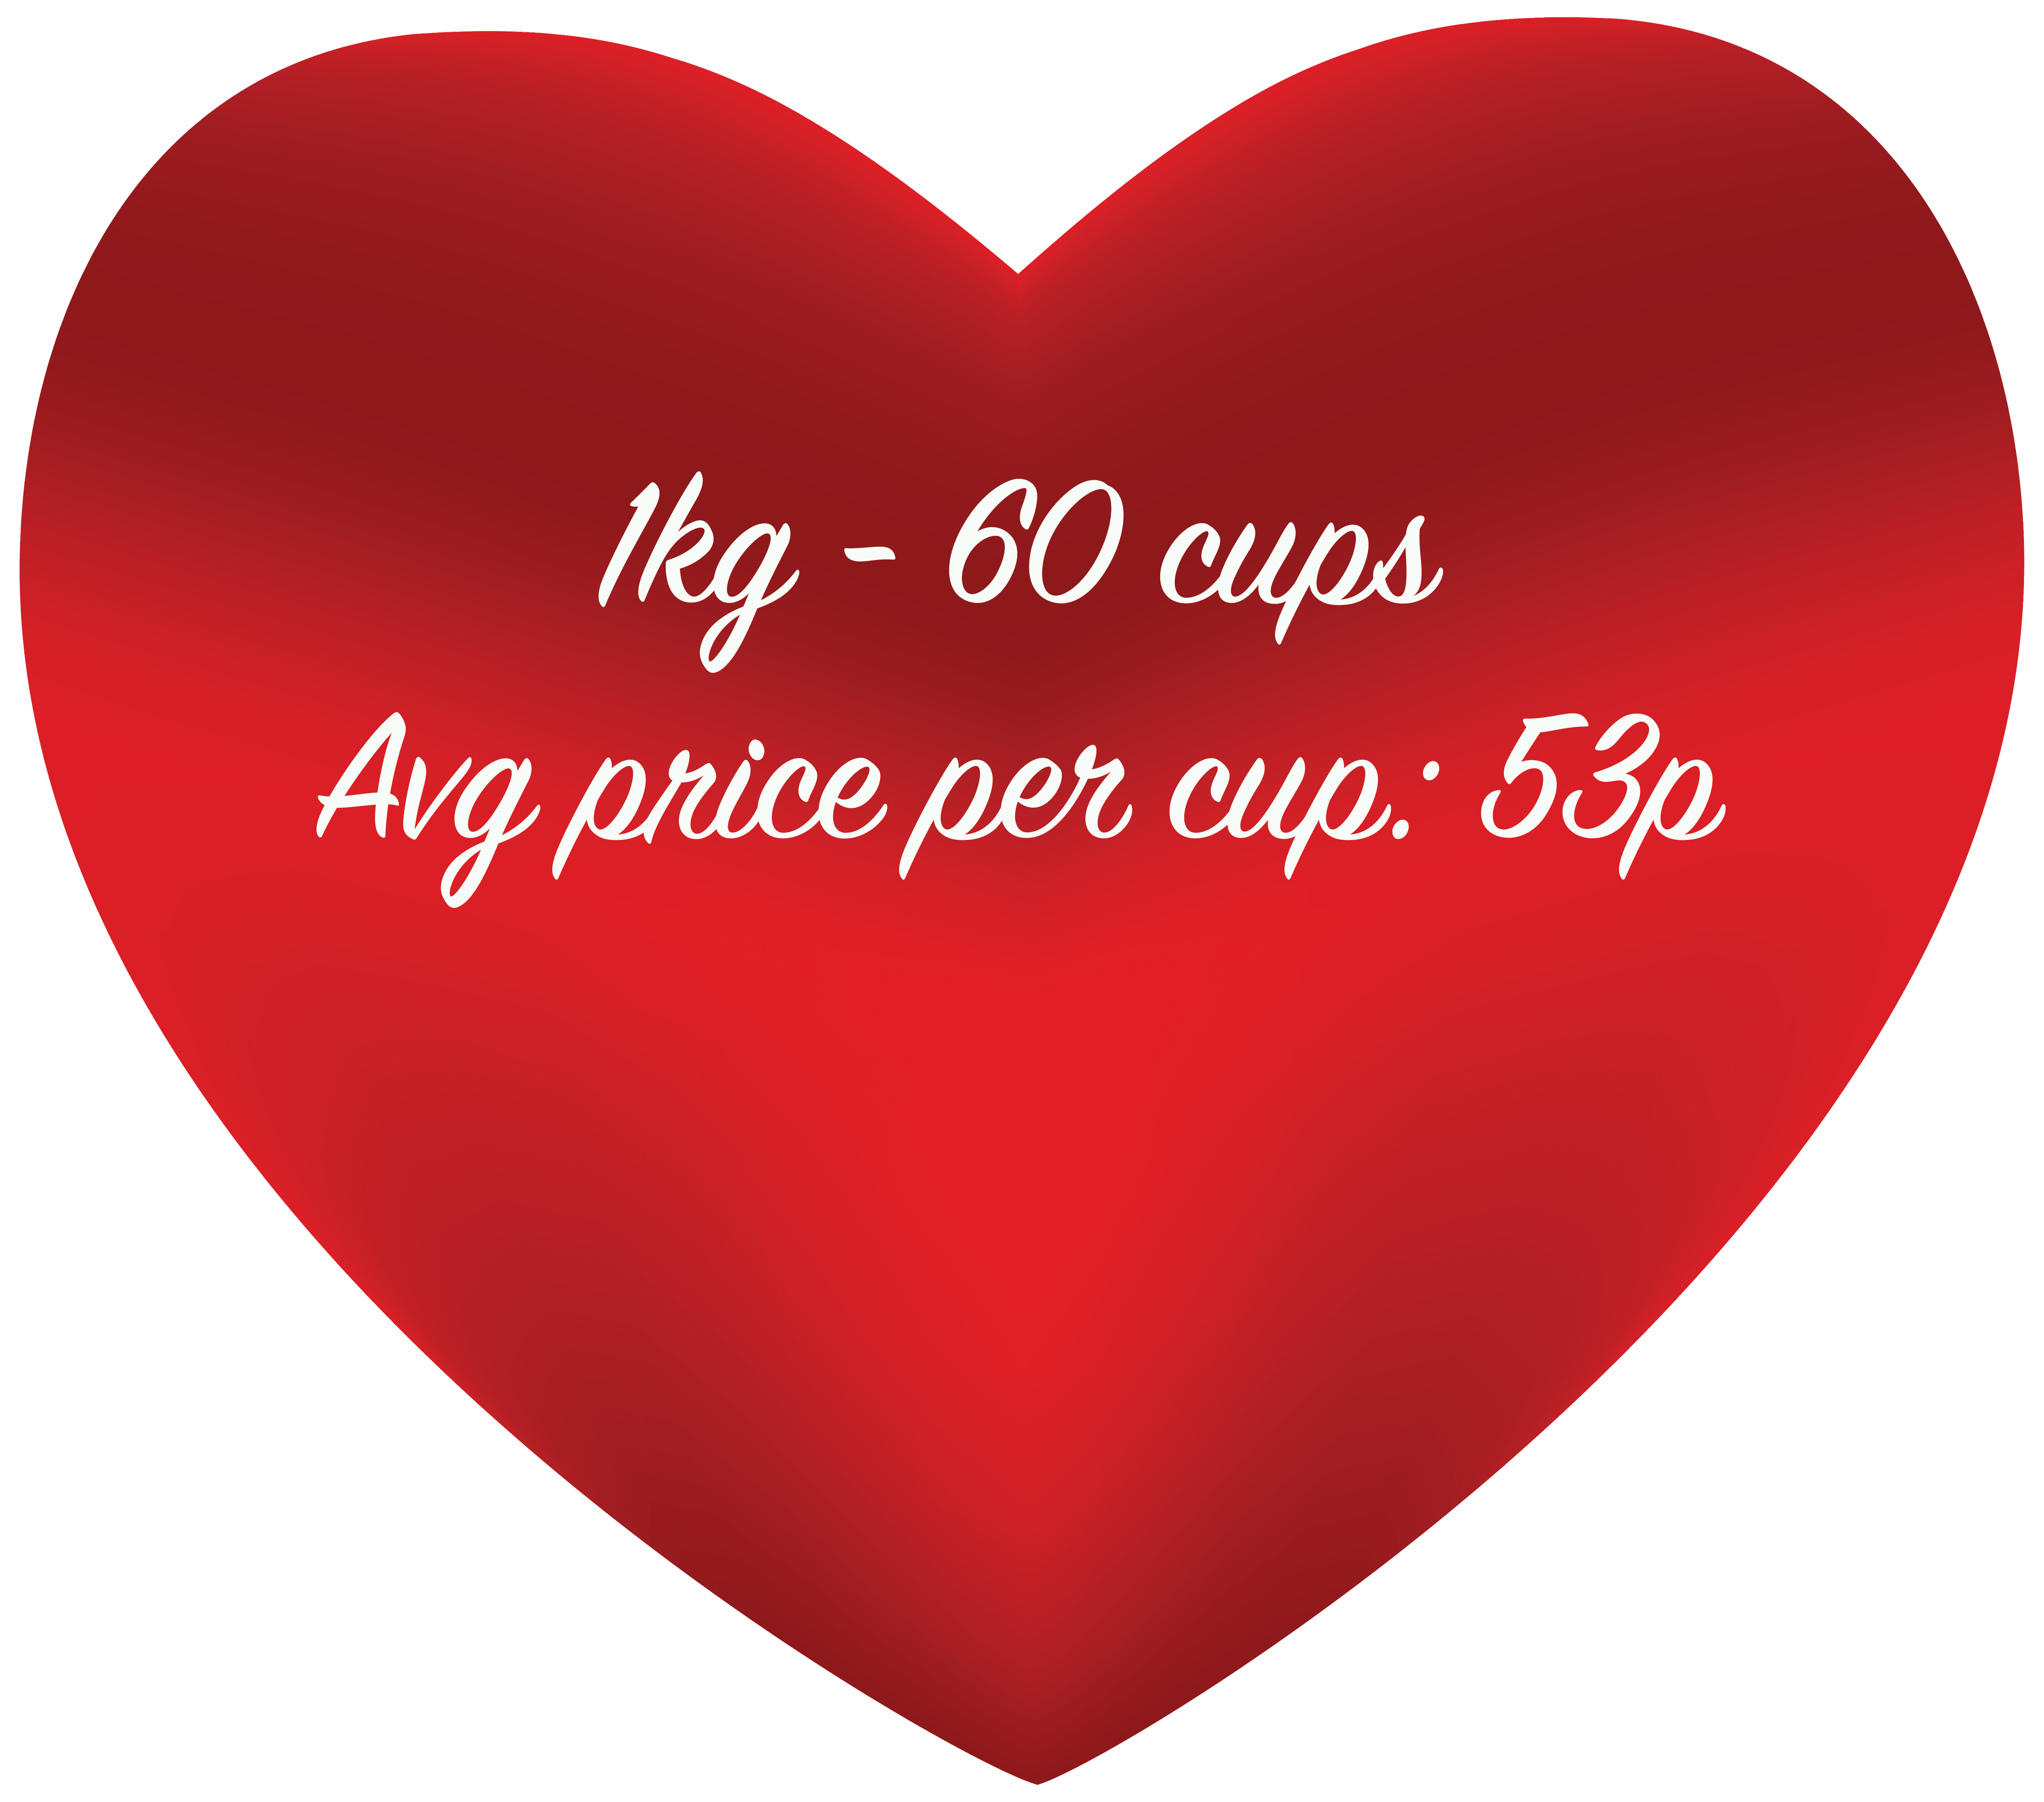 heart-60-cup